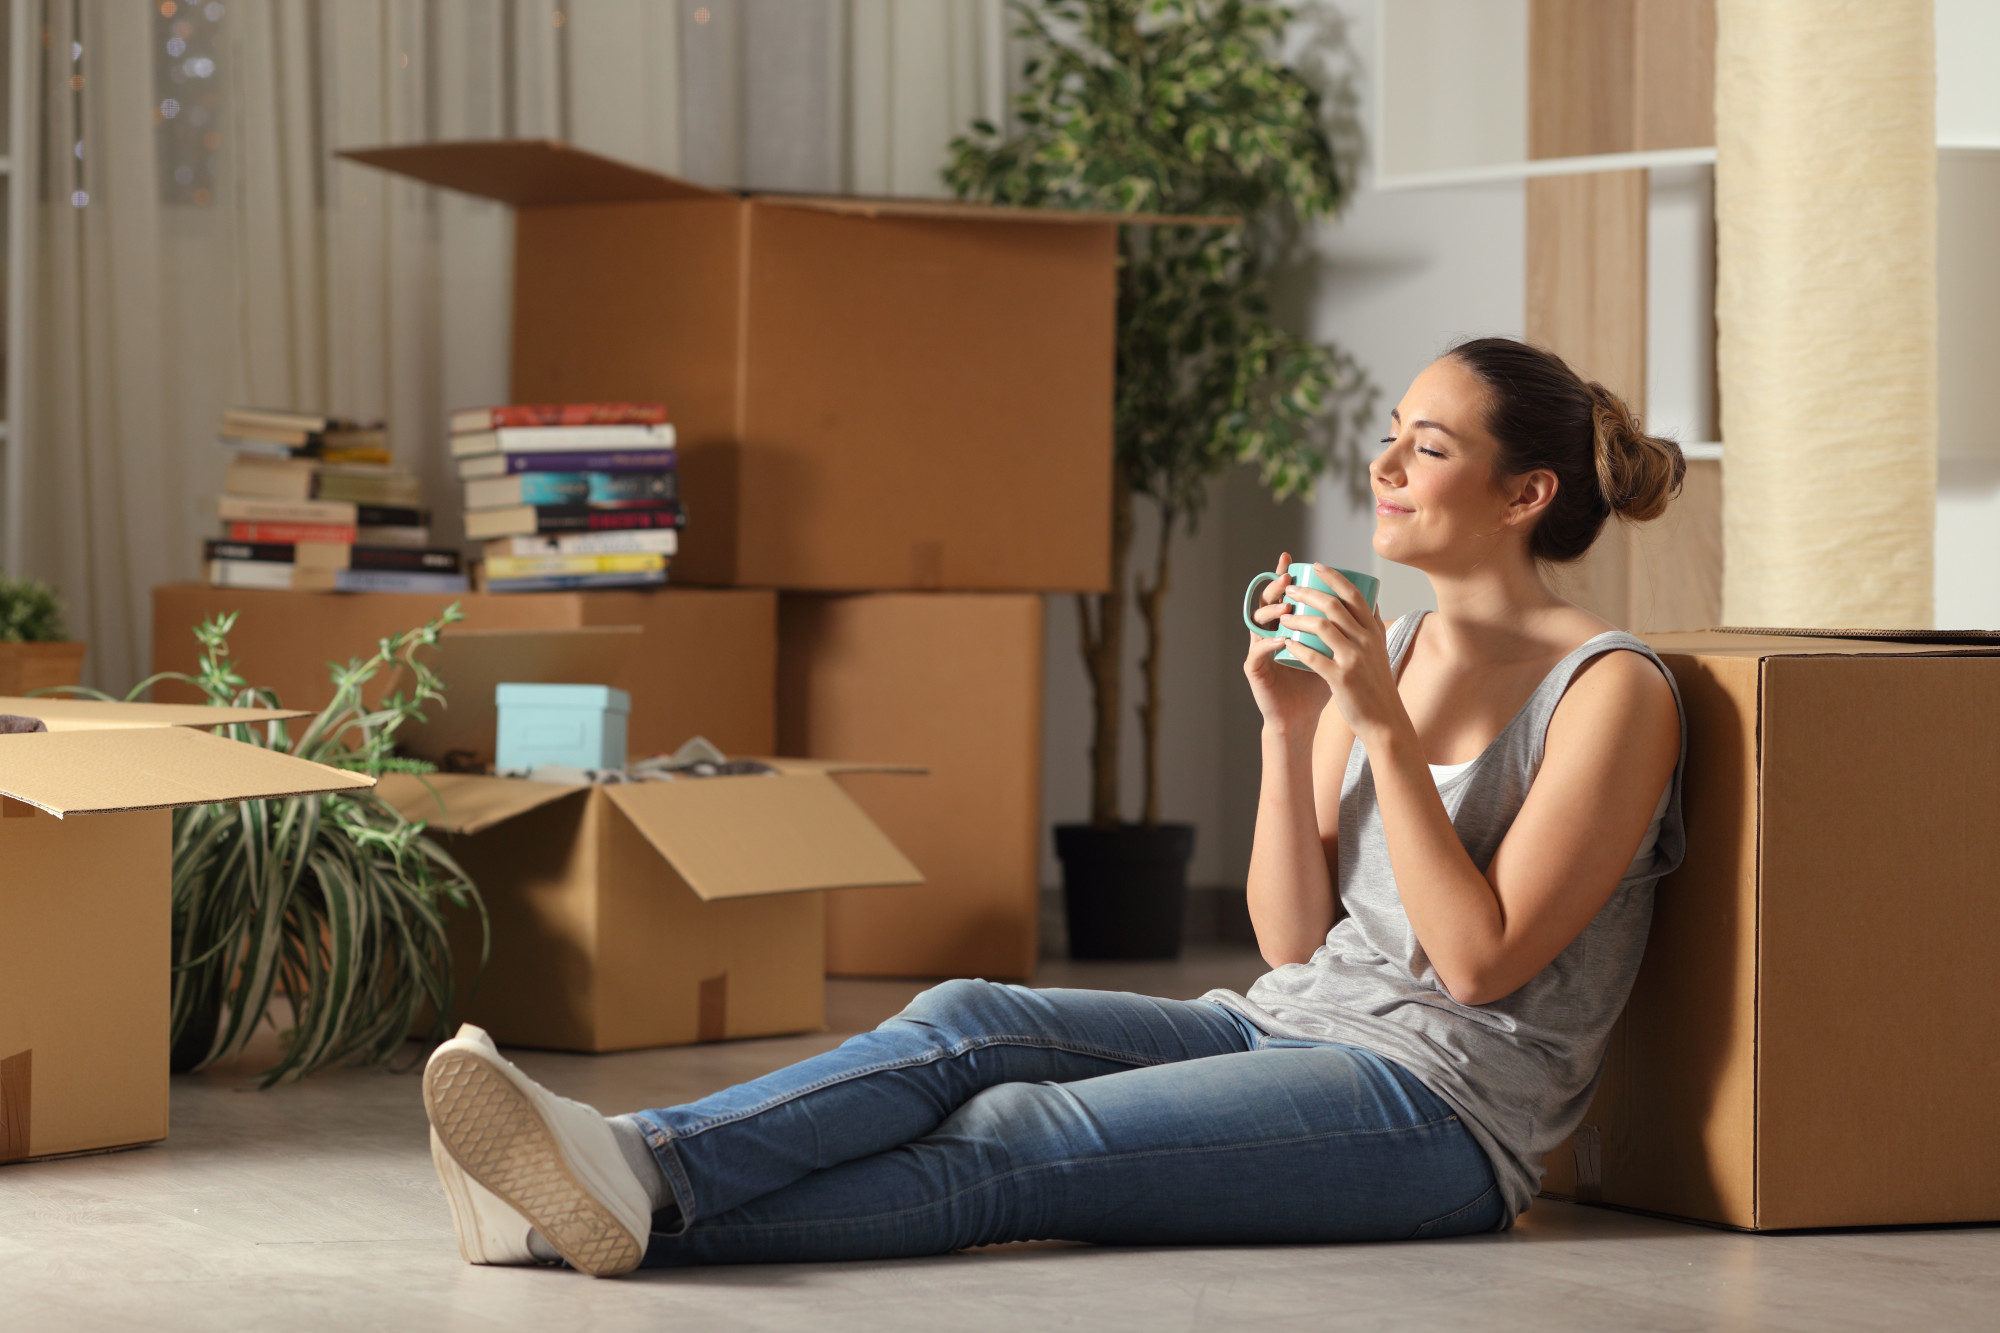 woman sitting on floor in home with moving boxes